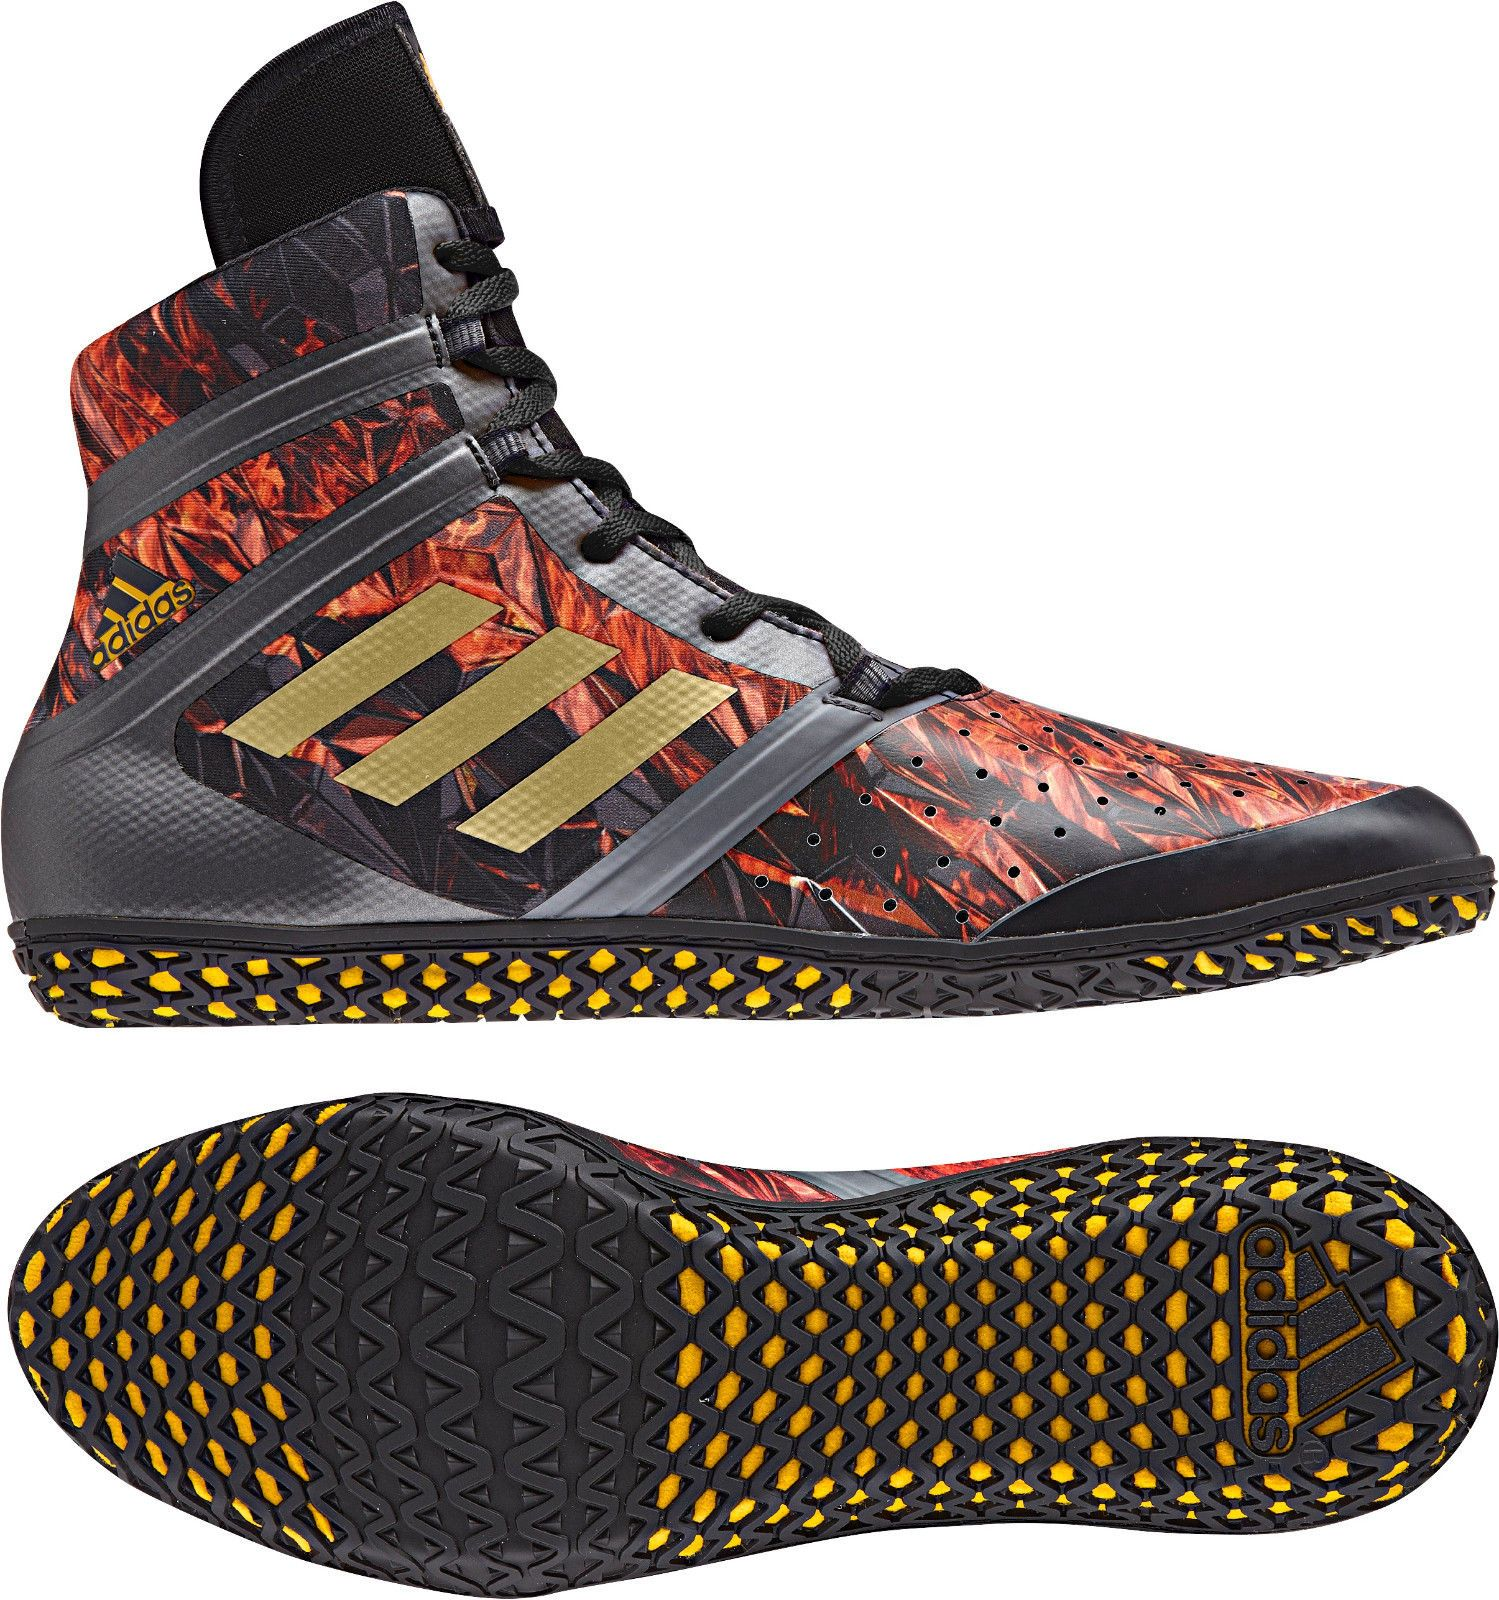 79470aa336a Adidas Flying Impact Limited Edition Black Fire Red Wrestling Shoes ...